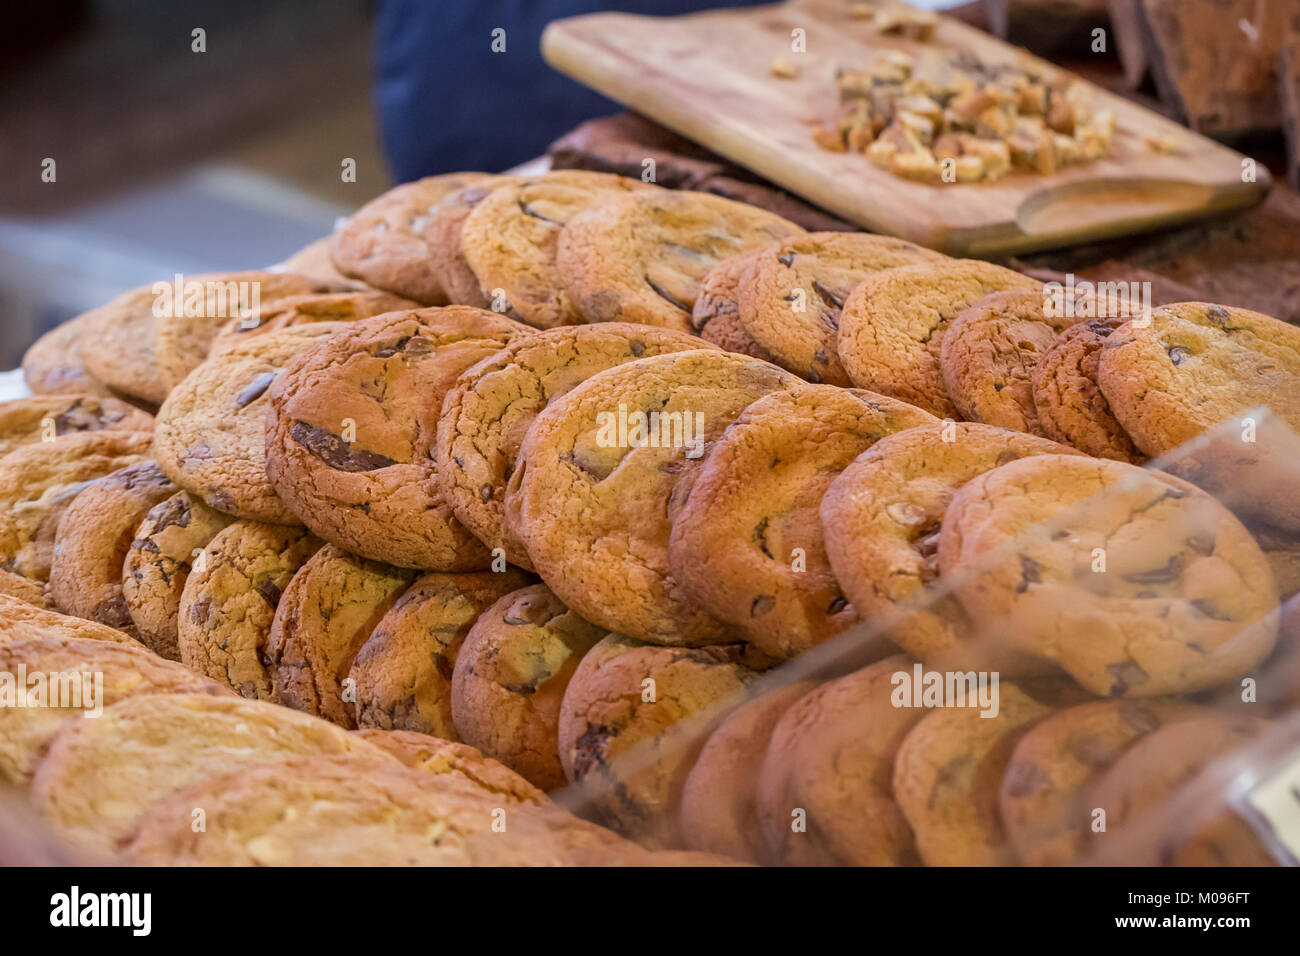 Artisan Chocolate Chip Cookies on display on a market stall in Borough Market, London - Stock Image